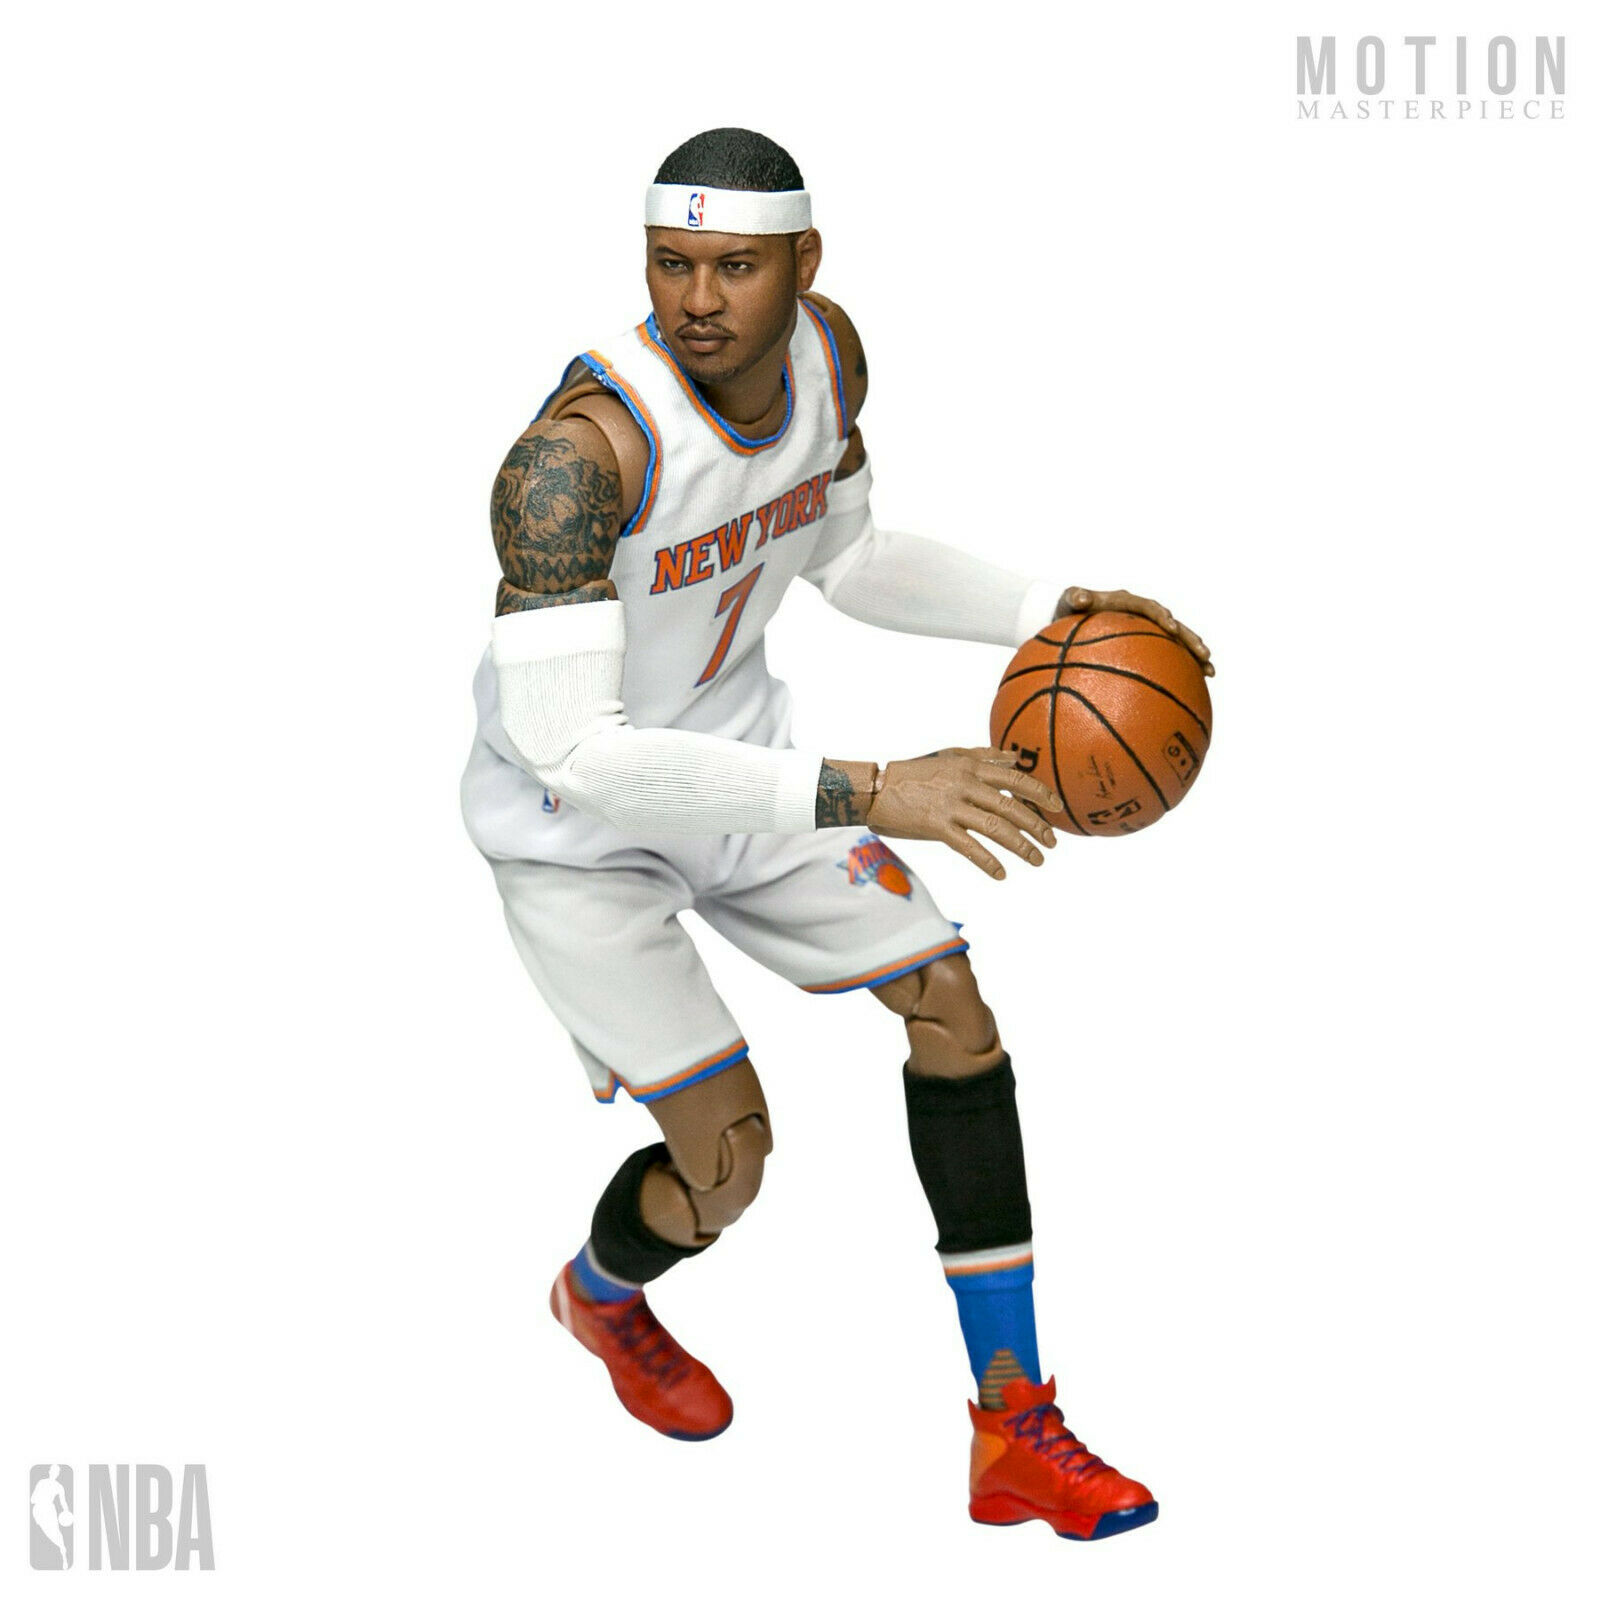 NBA - Carmelo Anthony 1 9th Scale Motion Masterpiece Action Figure (Enterbay)